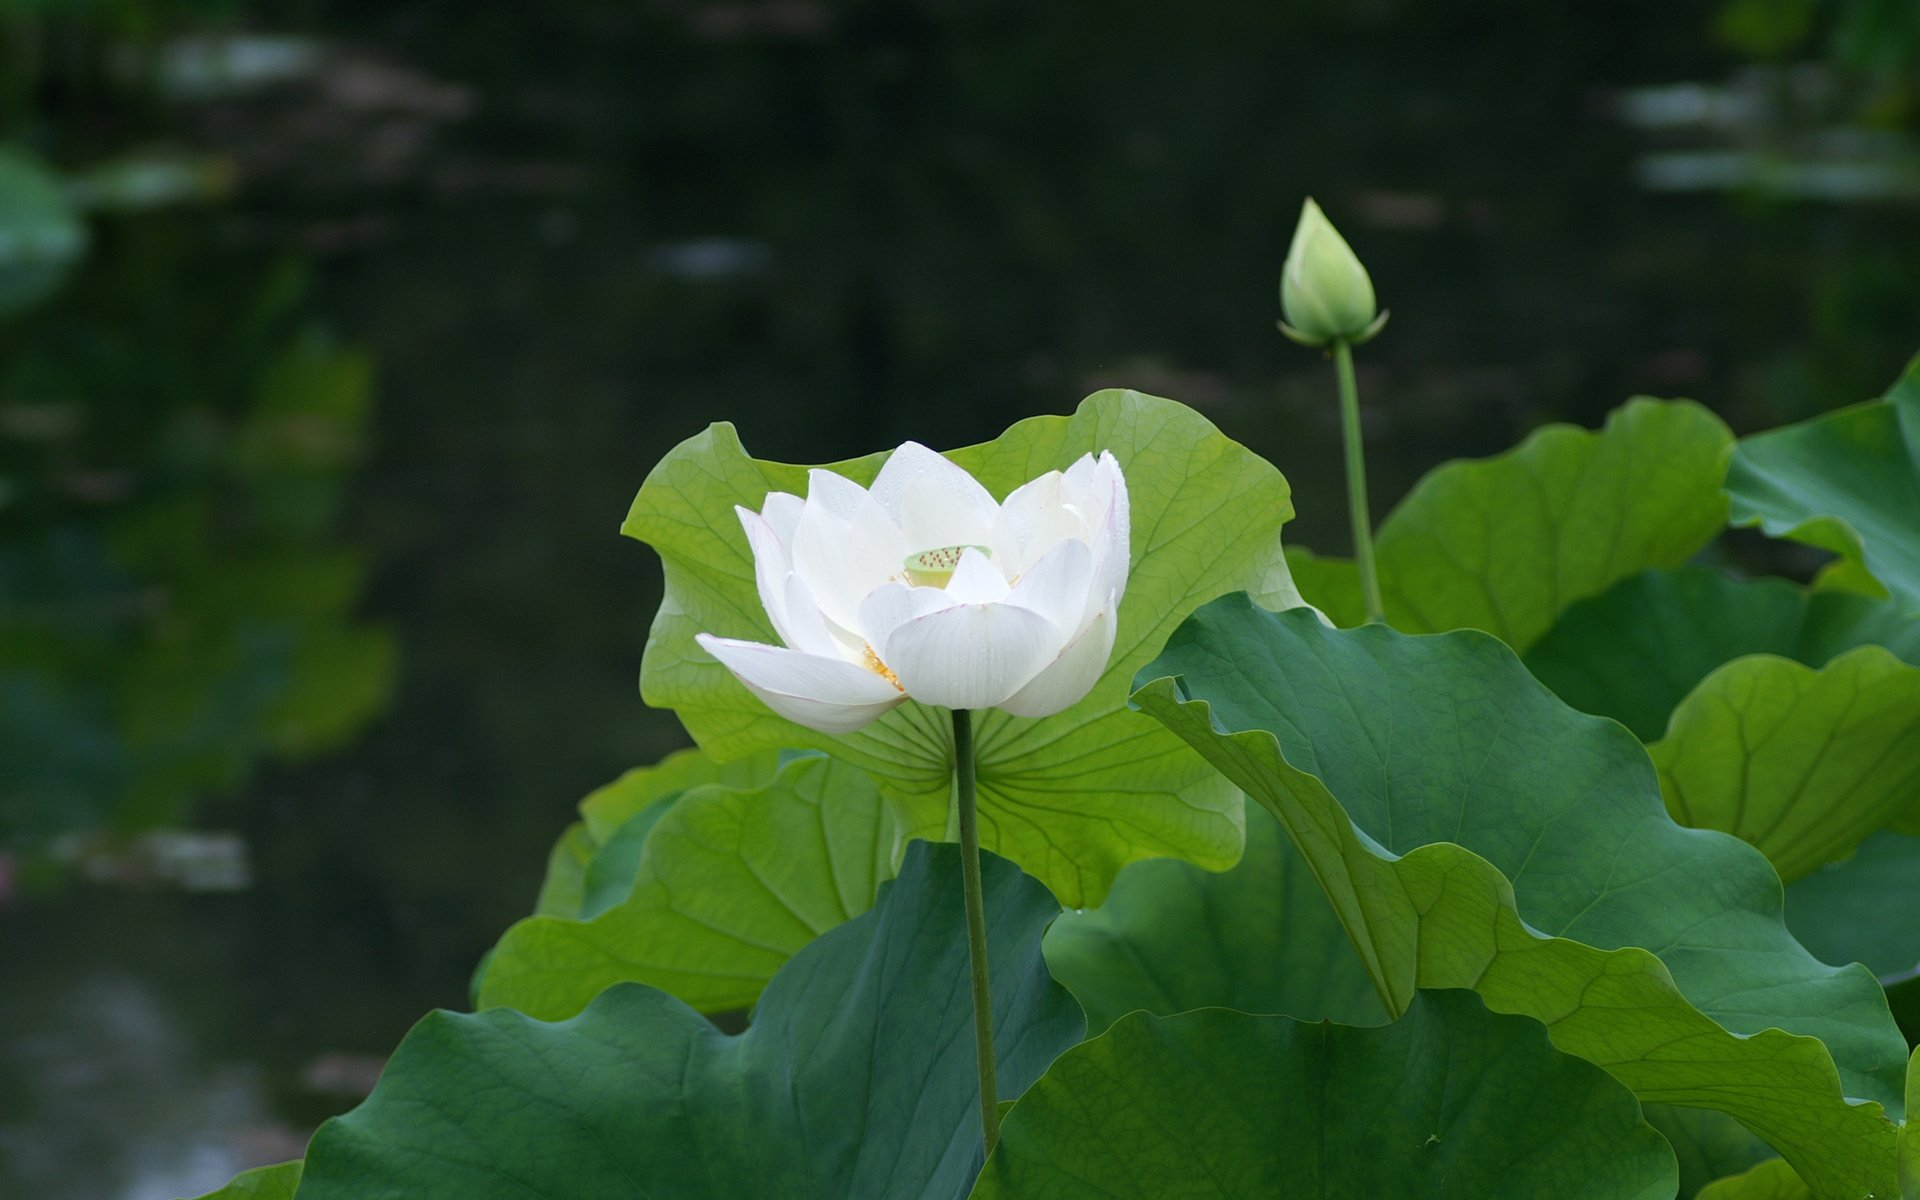 White lotus flower meaning and symbolism mythologian people would have begun to realize that the white lotus did not grow in spite of the inhospitable environment but because of it buycottarizona Choice Image